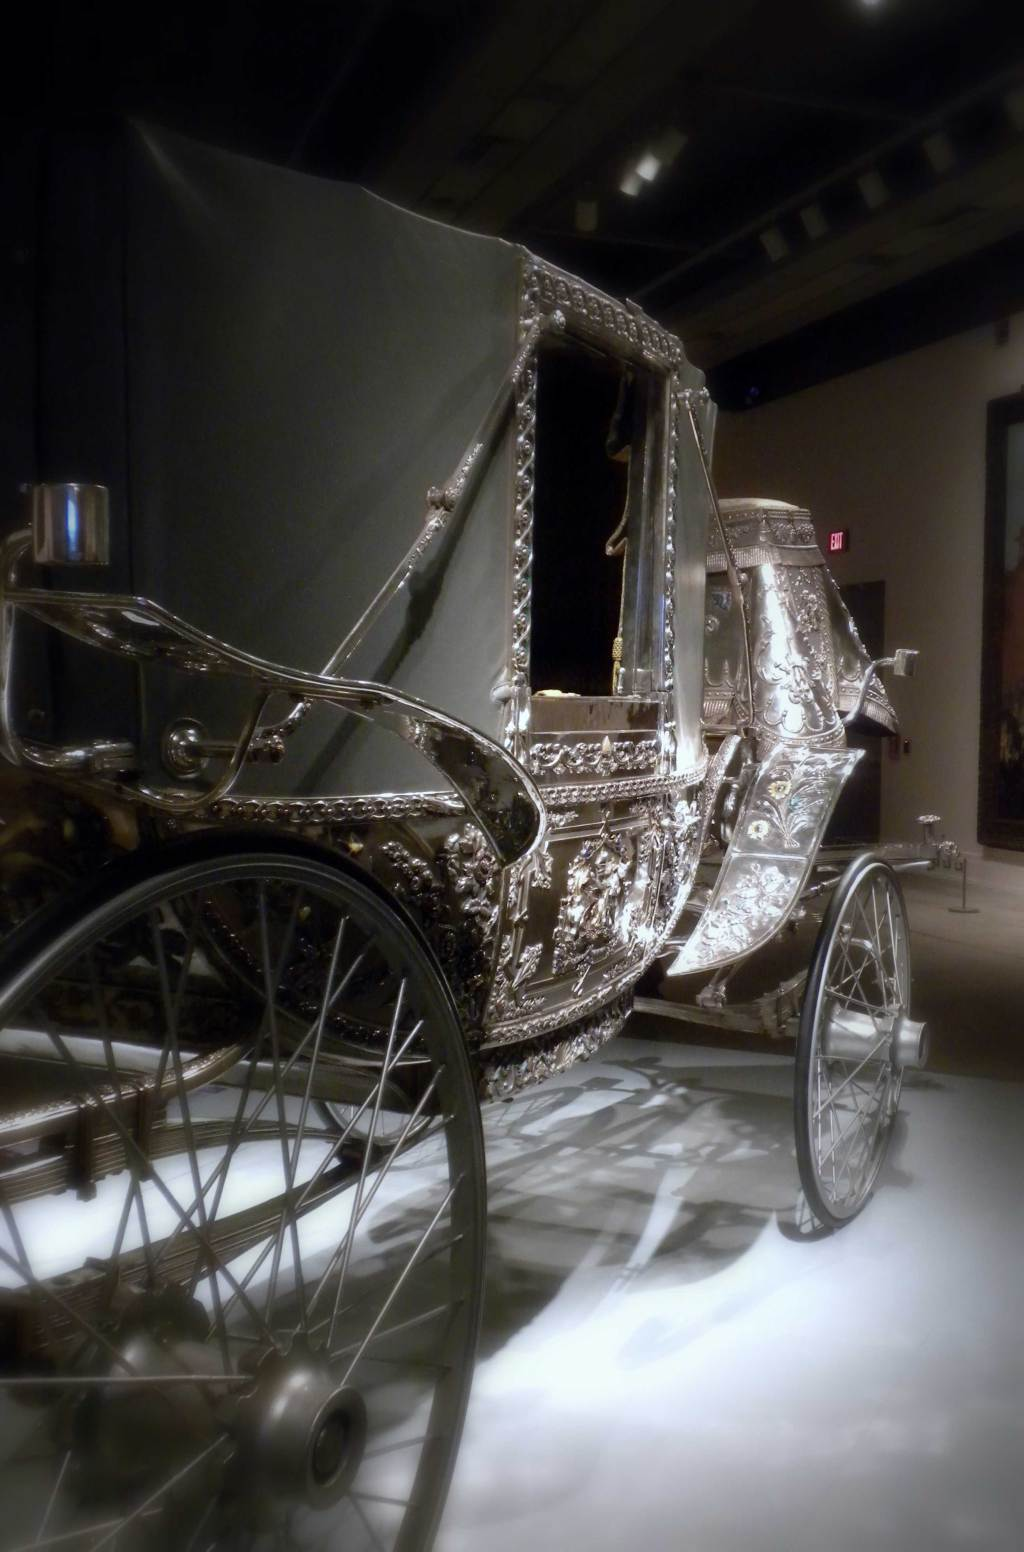 Silver Carriage of the maharajas on exshoesme.com. Photo by Jyotika Malhotra.